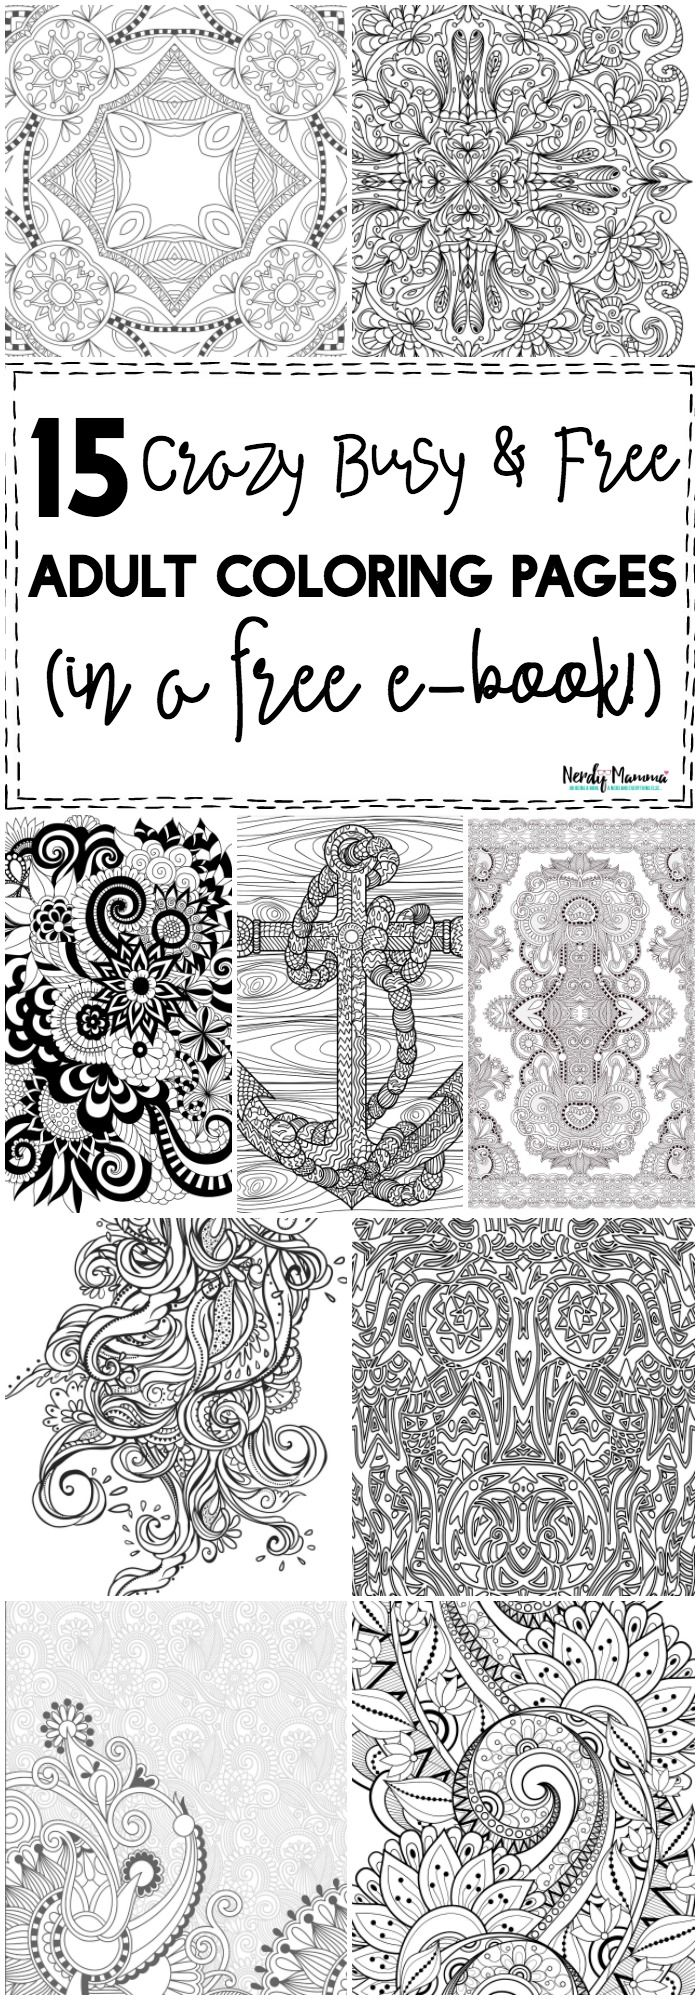 OMG! These are the BEST crazy busy & free adult coloring pages! They ...